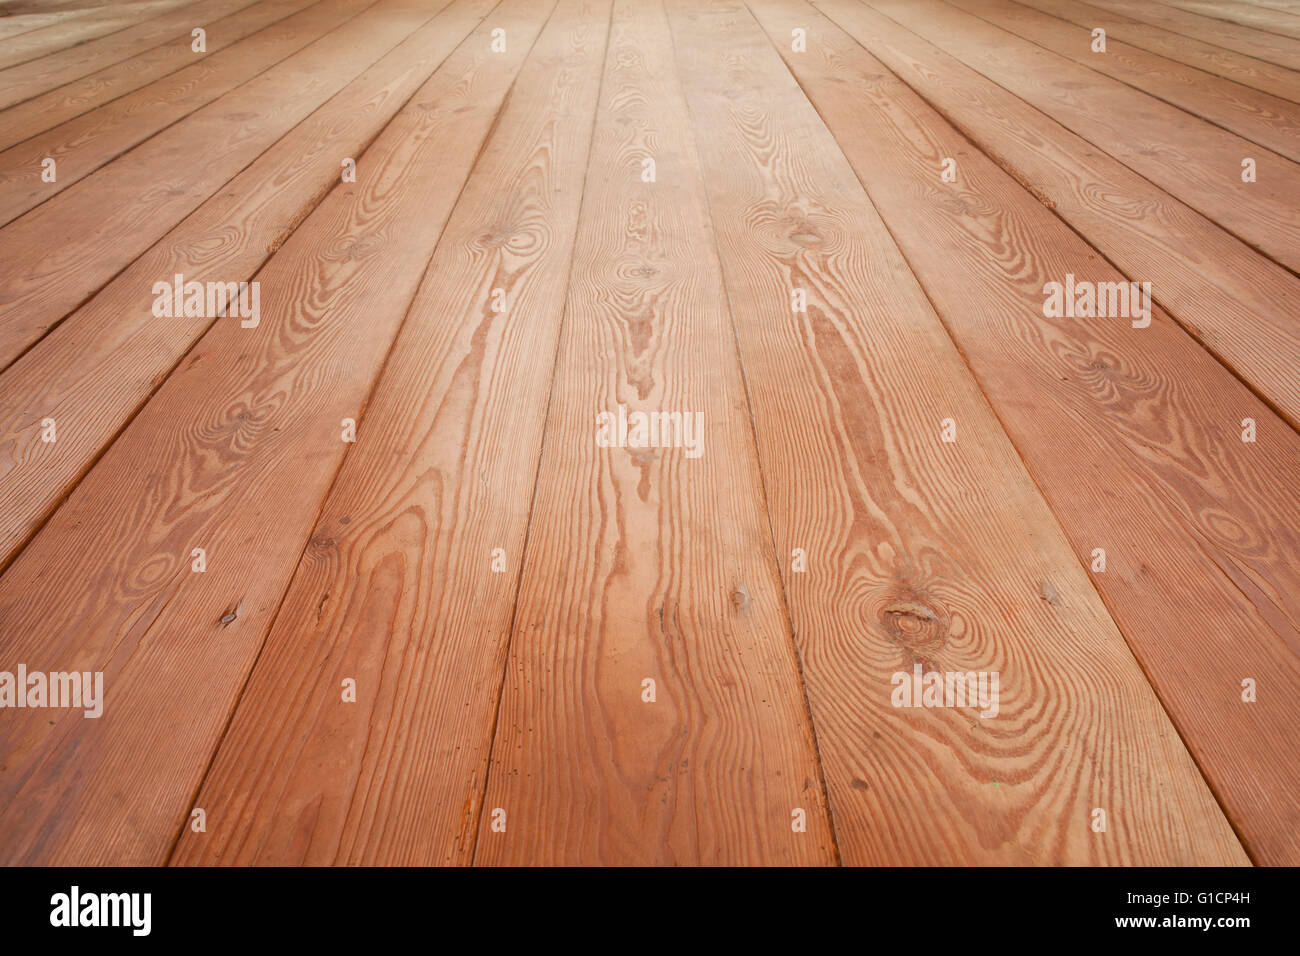 wooden floor background or brown planks texture - Stock Image